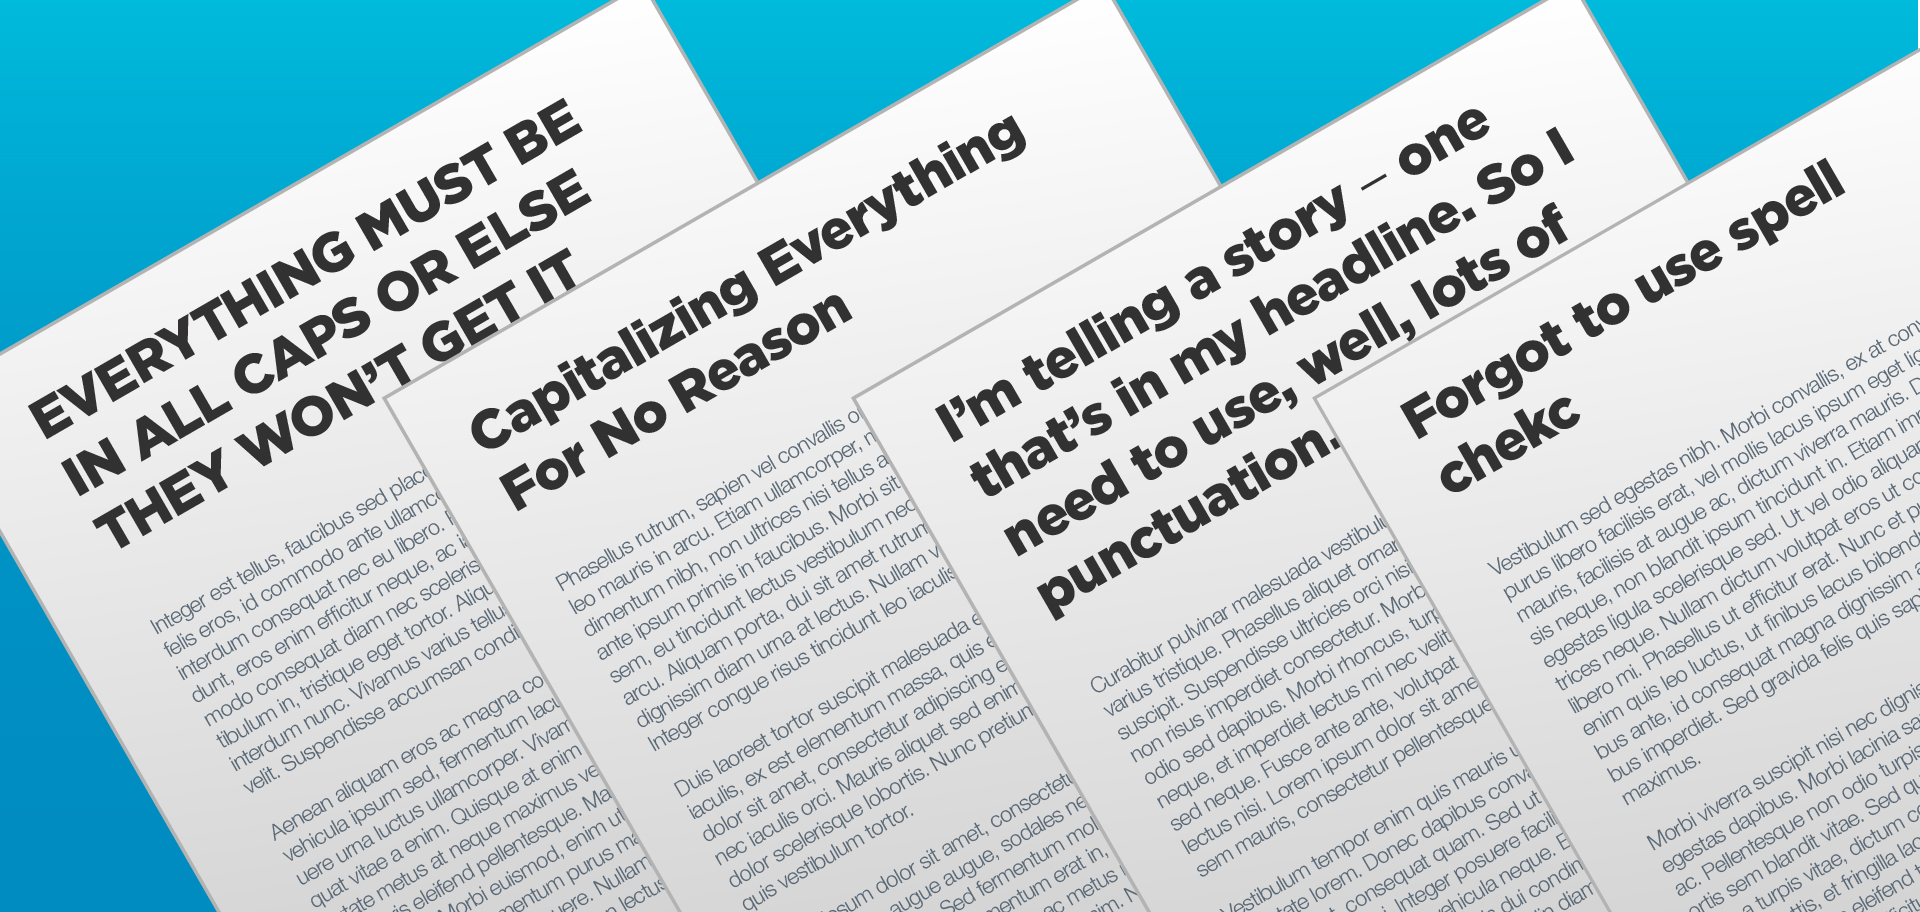 verbal style 4 tips to improve your writing blog Kettle Fire Creative verbal style Verbal Style: 4 Tips to Improve Your Writing role of style in good communication fi